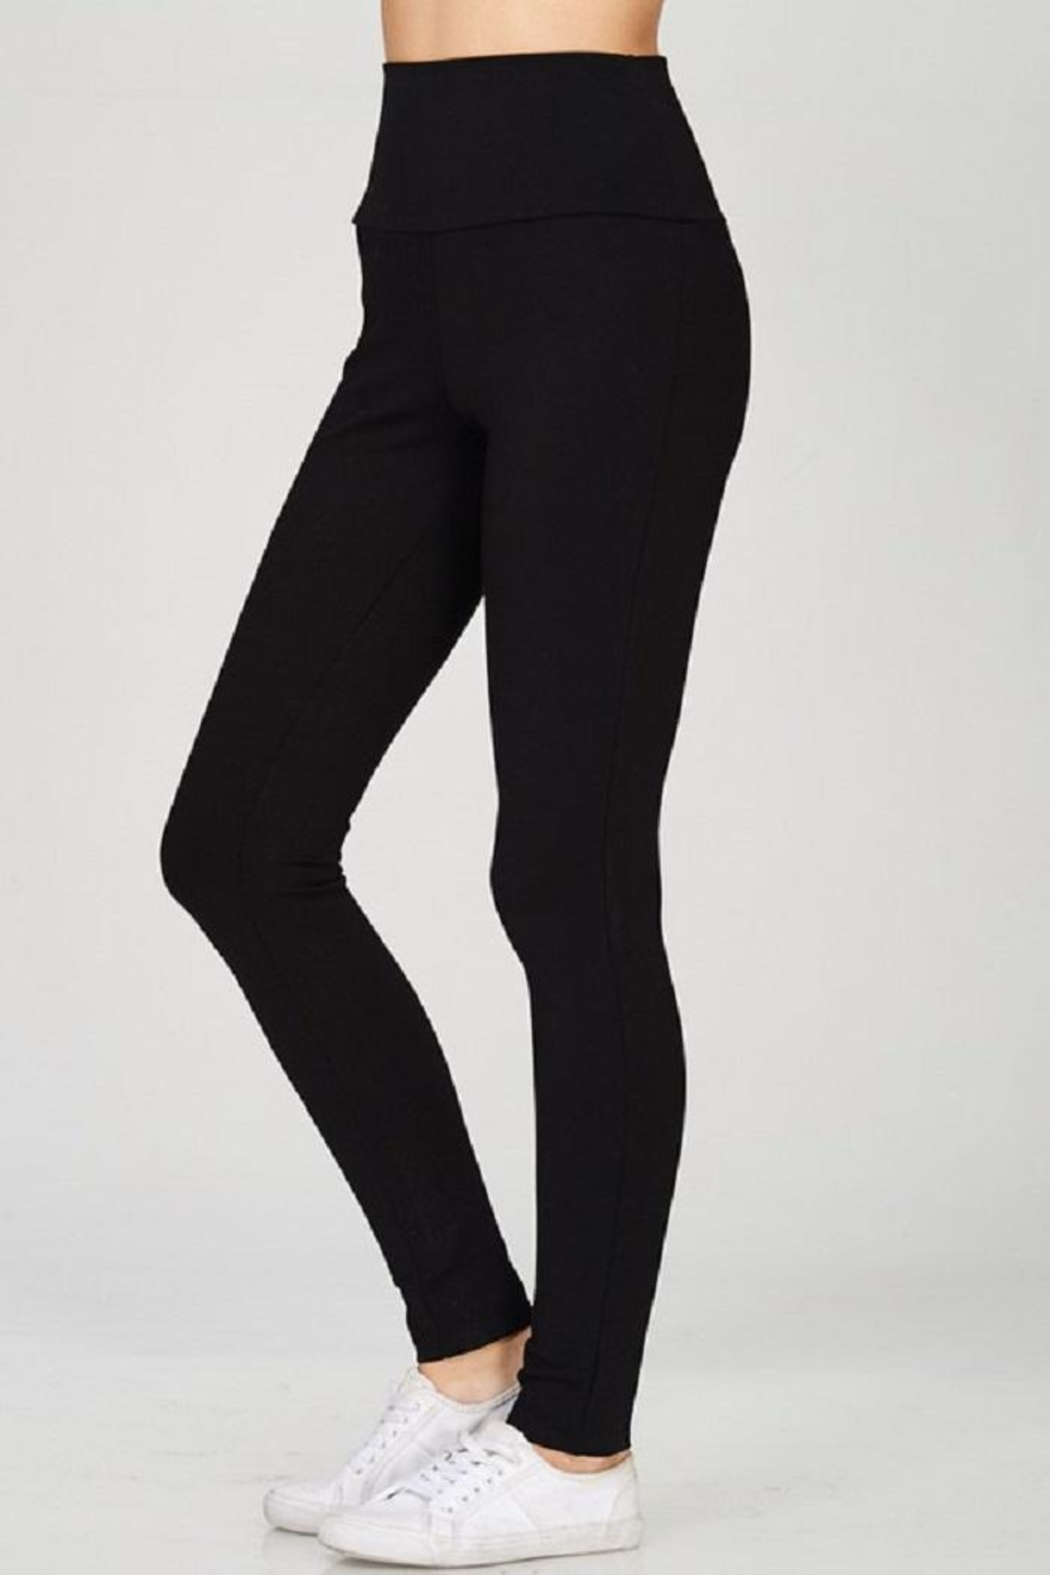 98c8eb22512a4c Lumiere High Waist Legging from New York by Dor L'Dor — Shoptiques